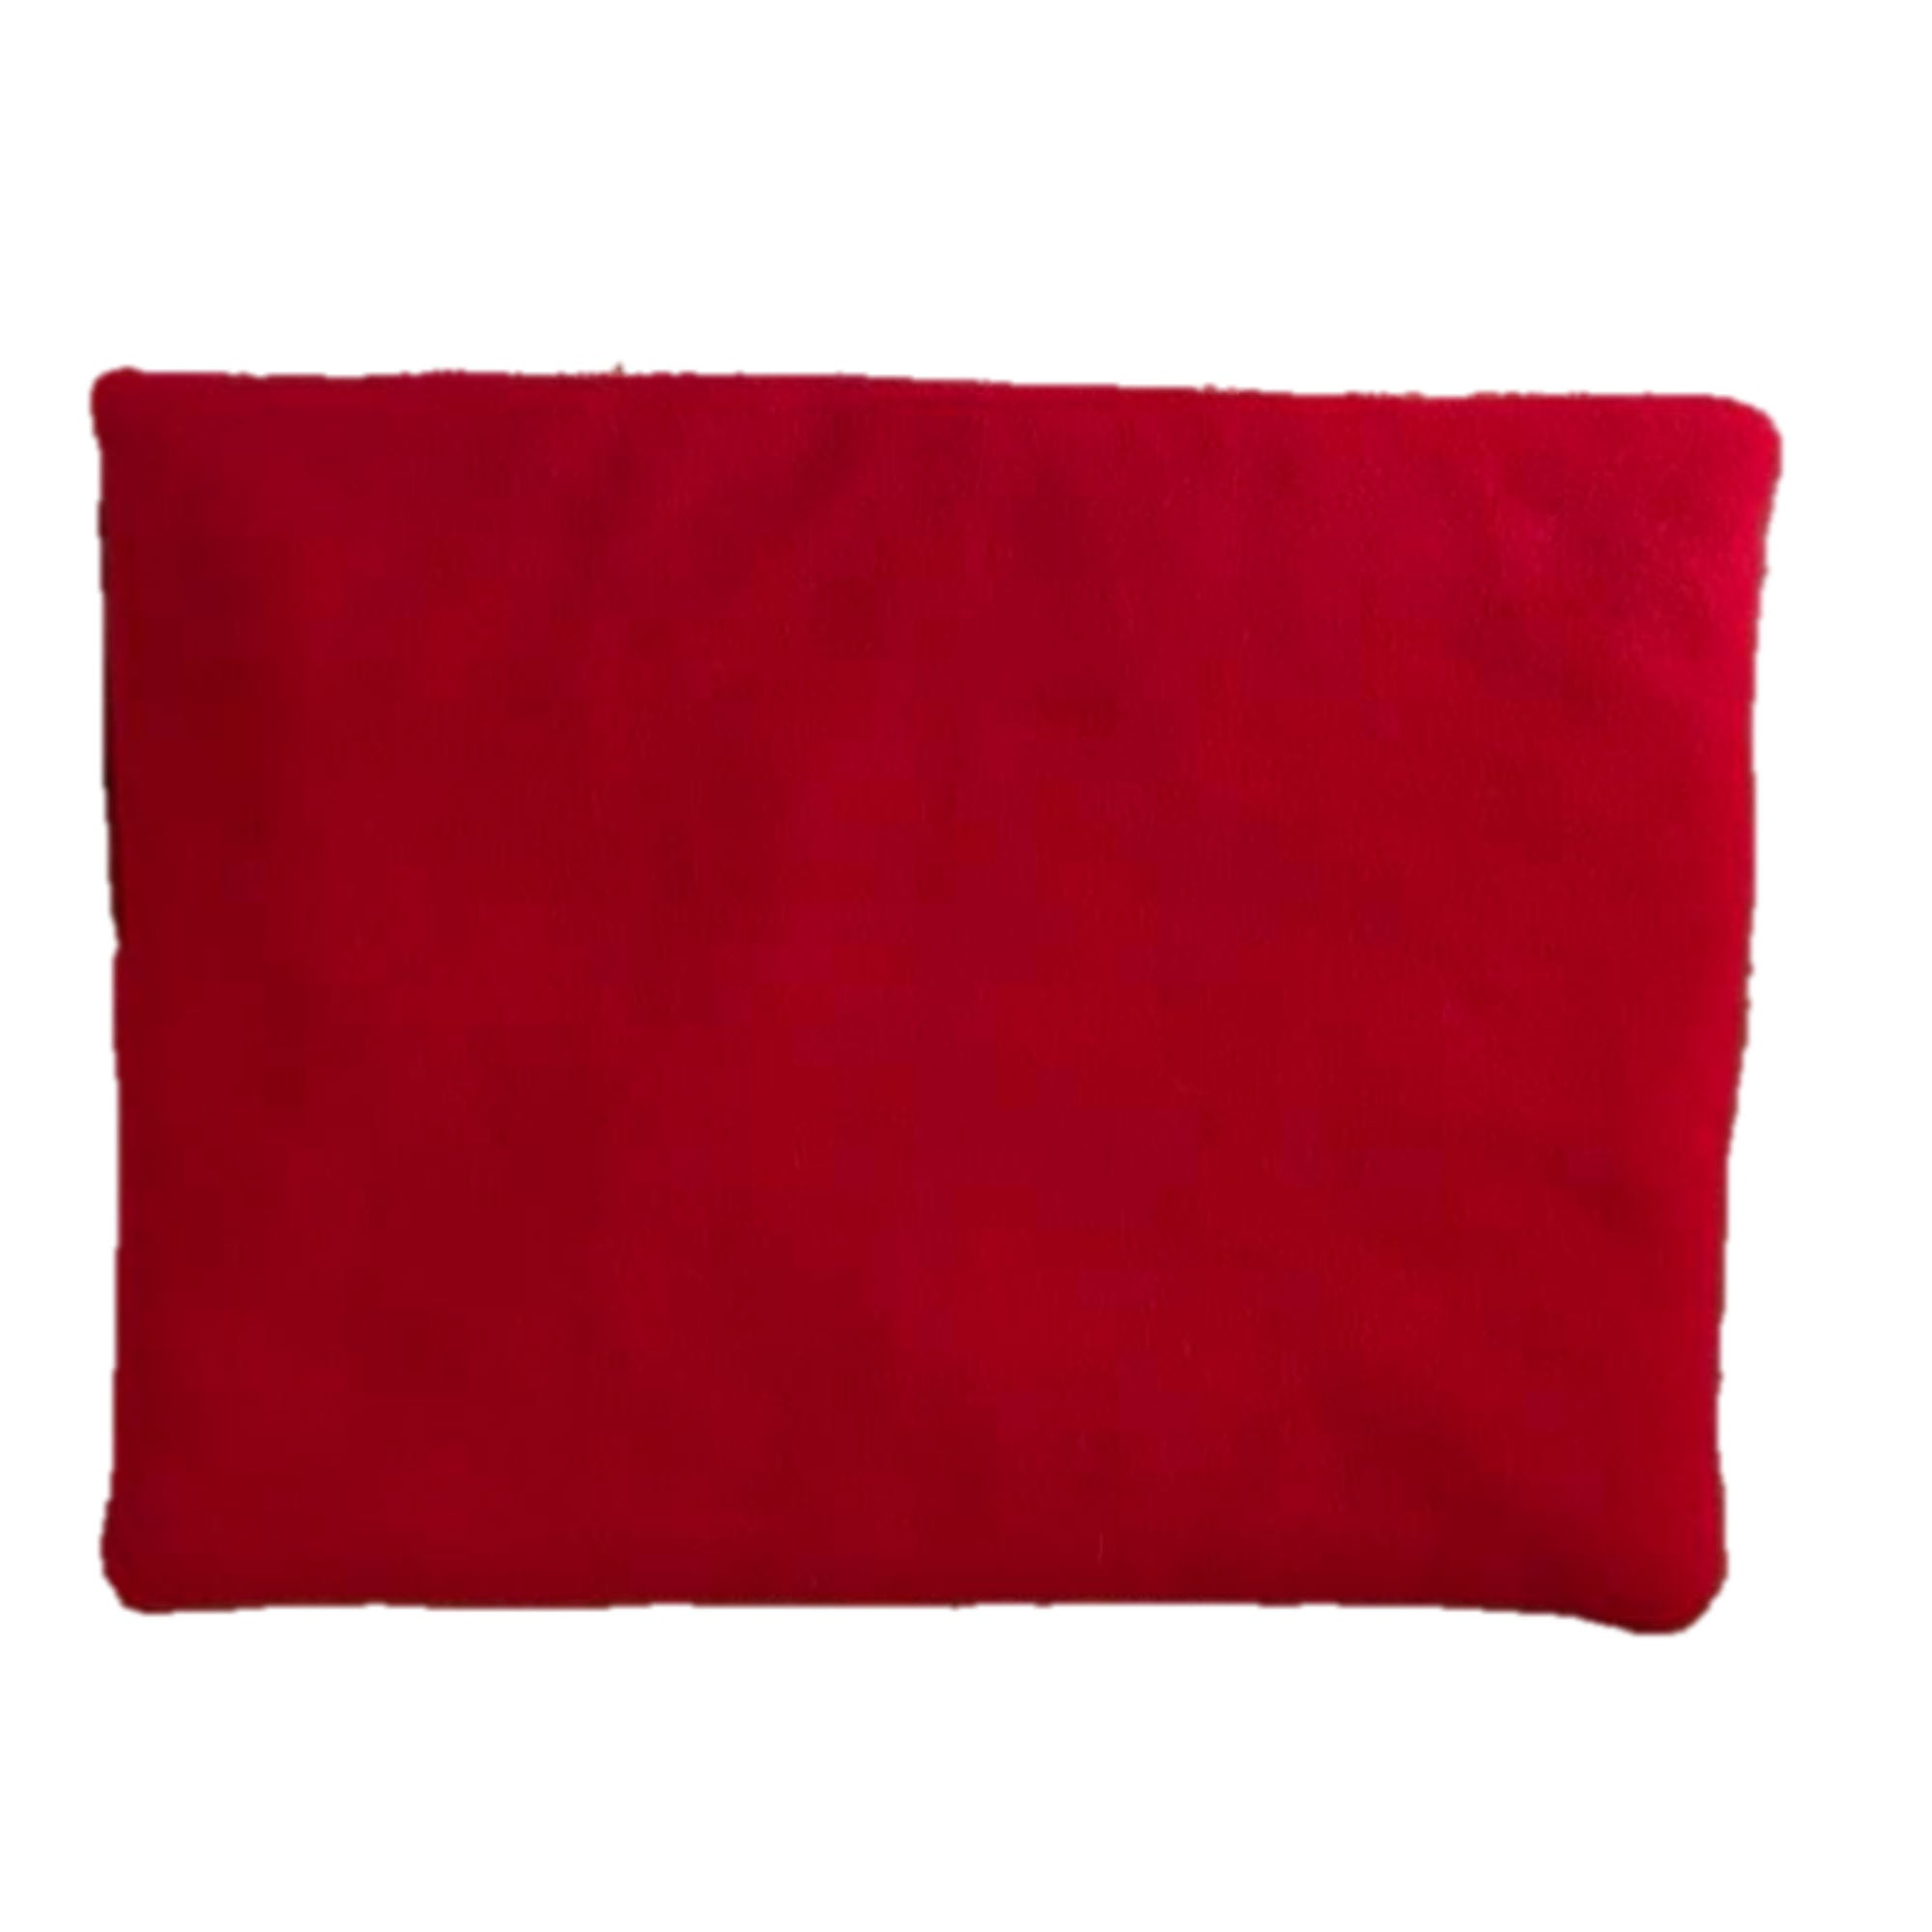 Crate Mat - Red - Small